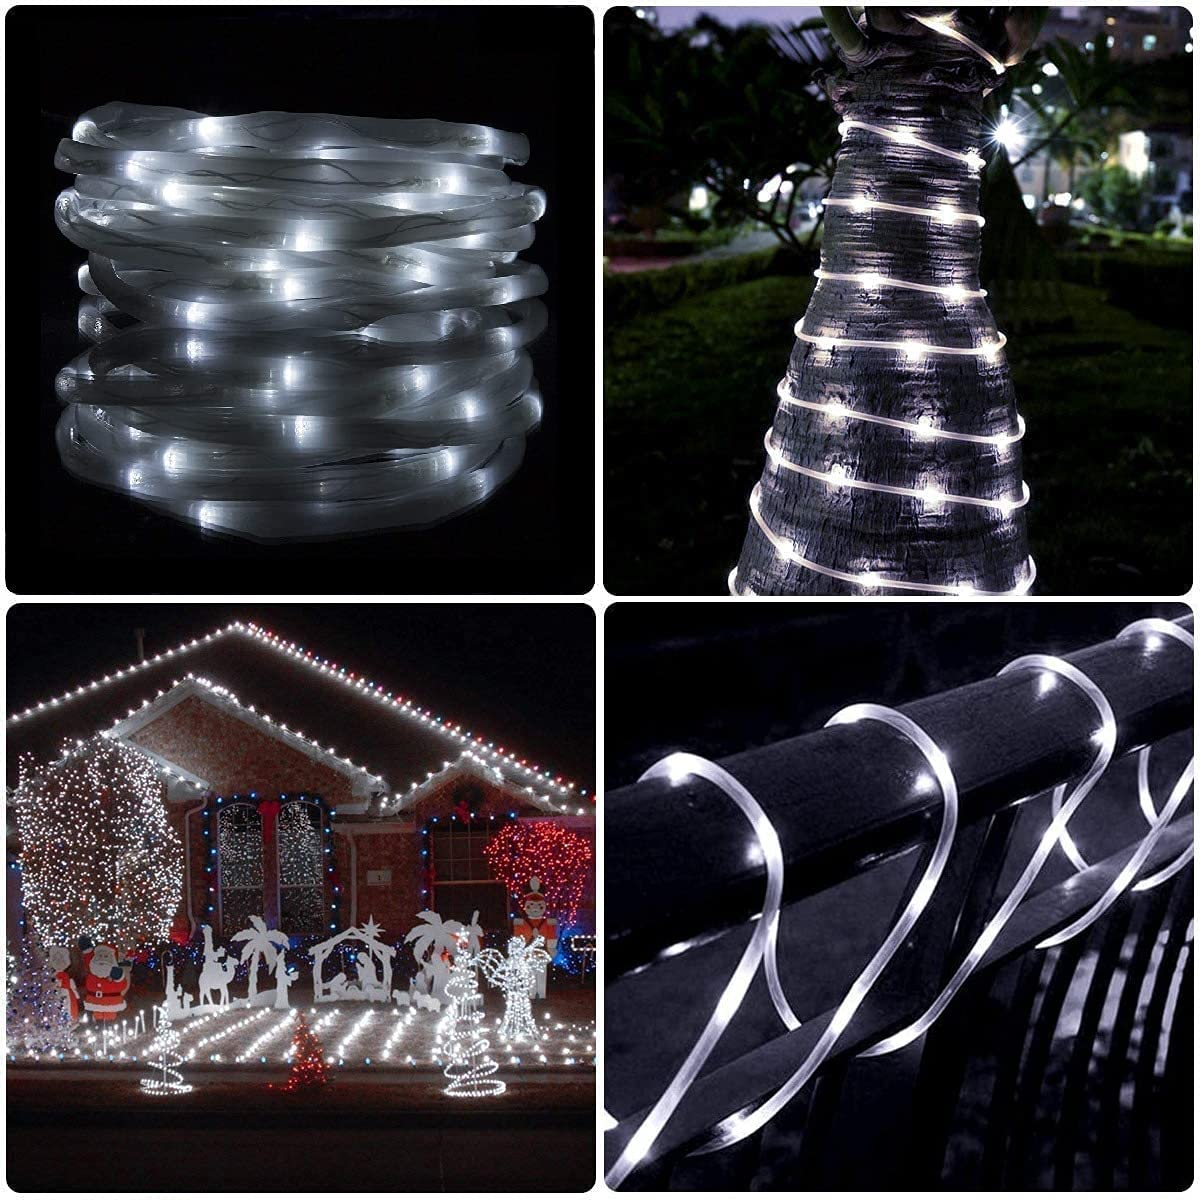 LED NEW before selling White Solar Special price for a limited time Rope Lights and Indoor Waterproof Auto Outdoor